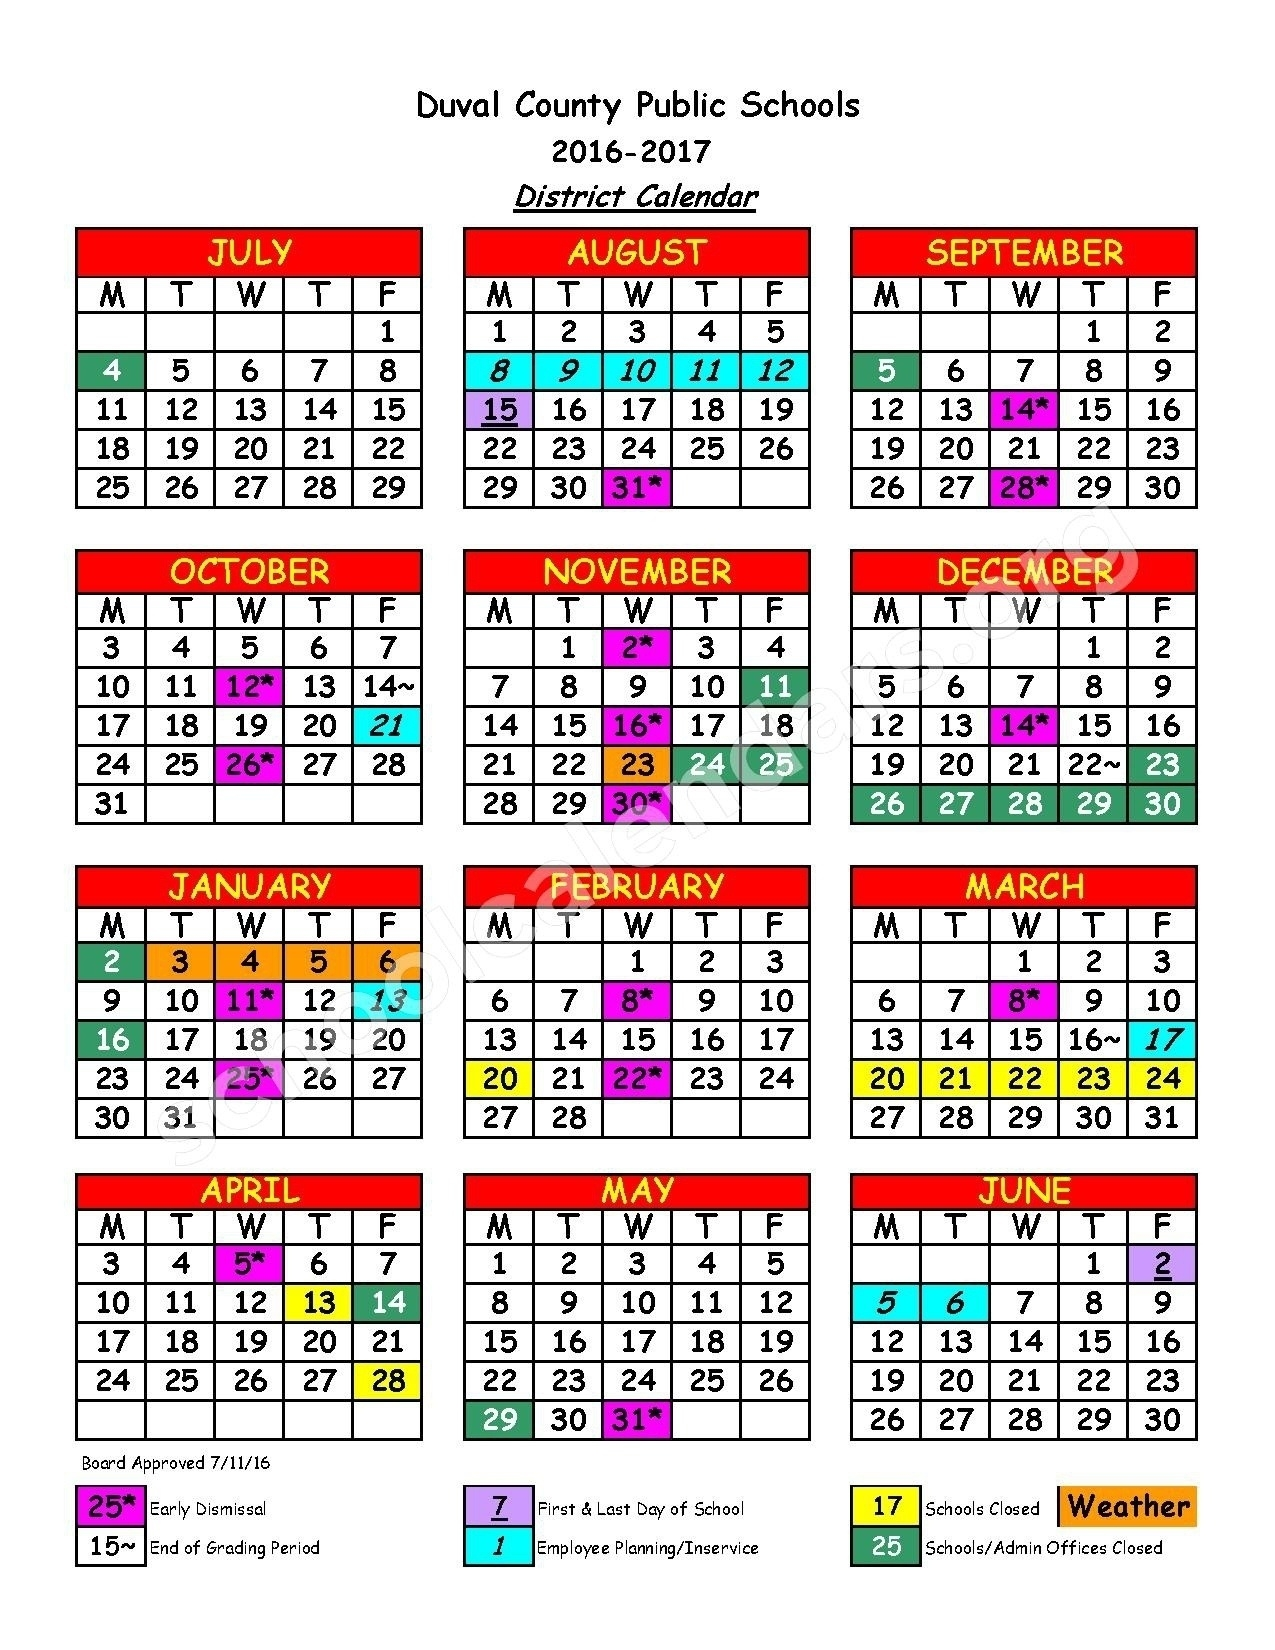 Incredible School Calendar Duval County • Printable Blank Calendar_School Calendar Duval County